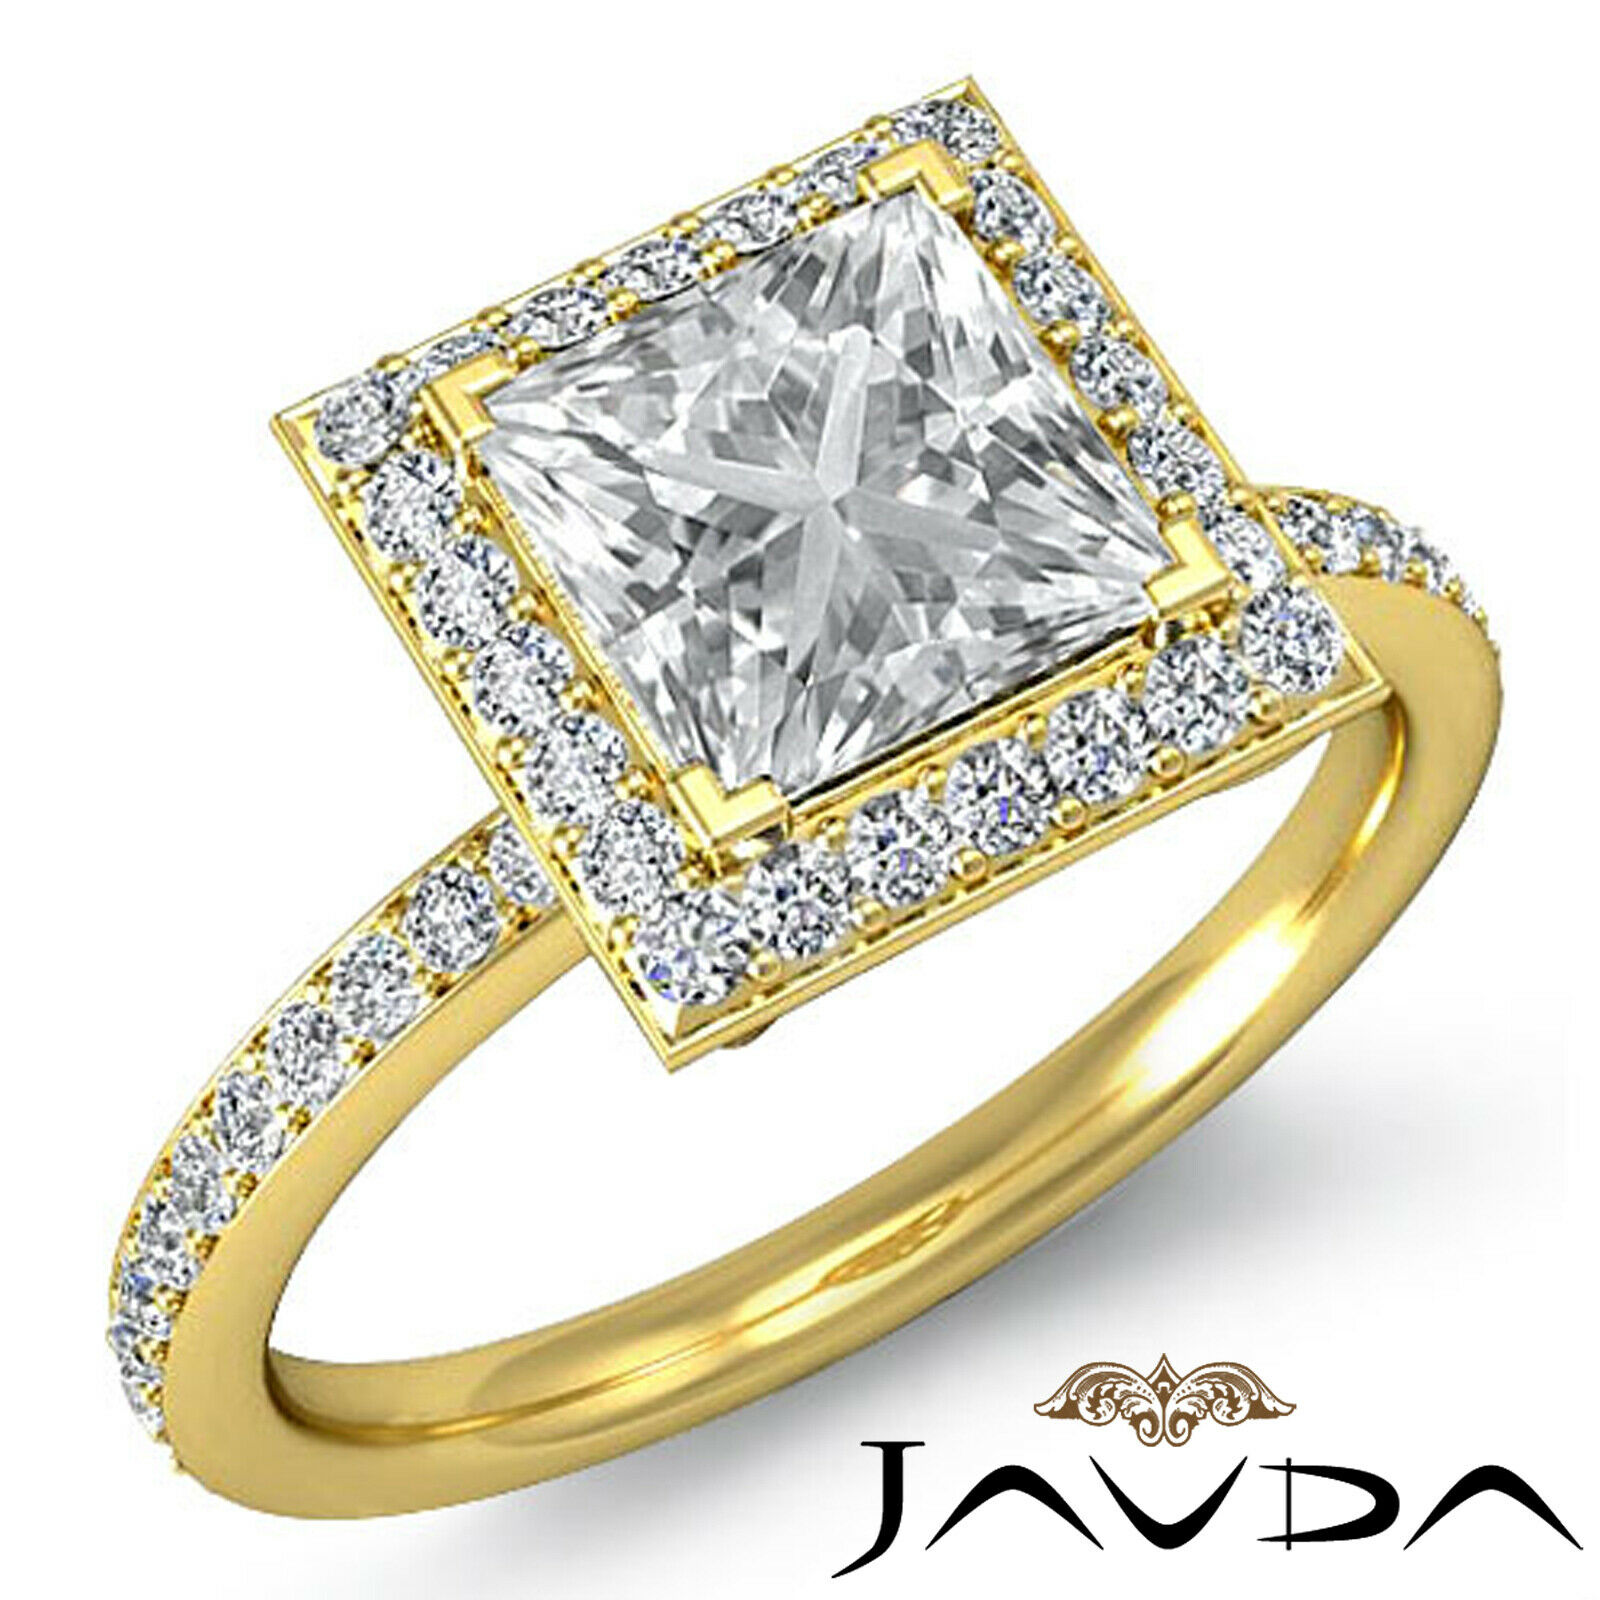 Halo Pave Set Princess Cut Diamond Engagement Ring GIA G Color VS1 Clarity 2.5Ct 7